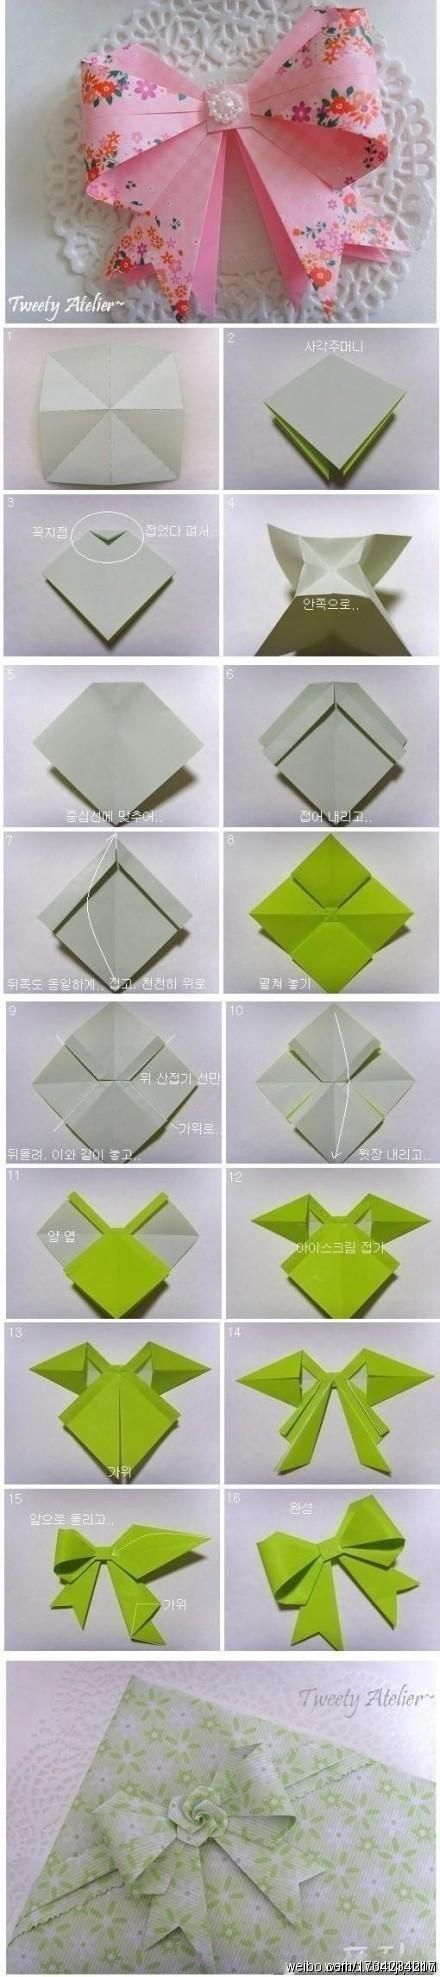 Paper bows for gift wrapping.